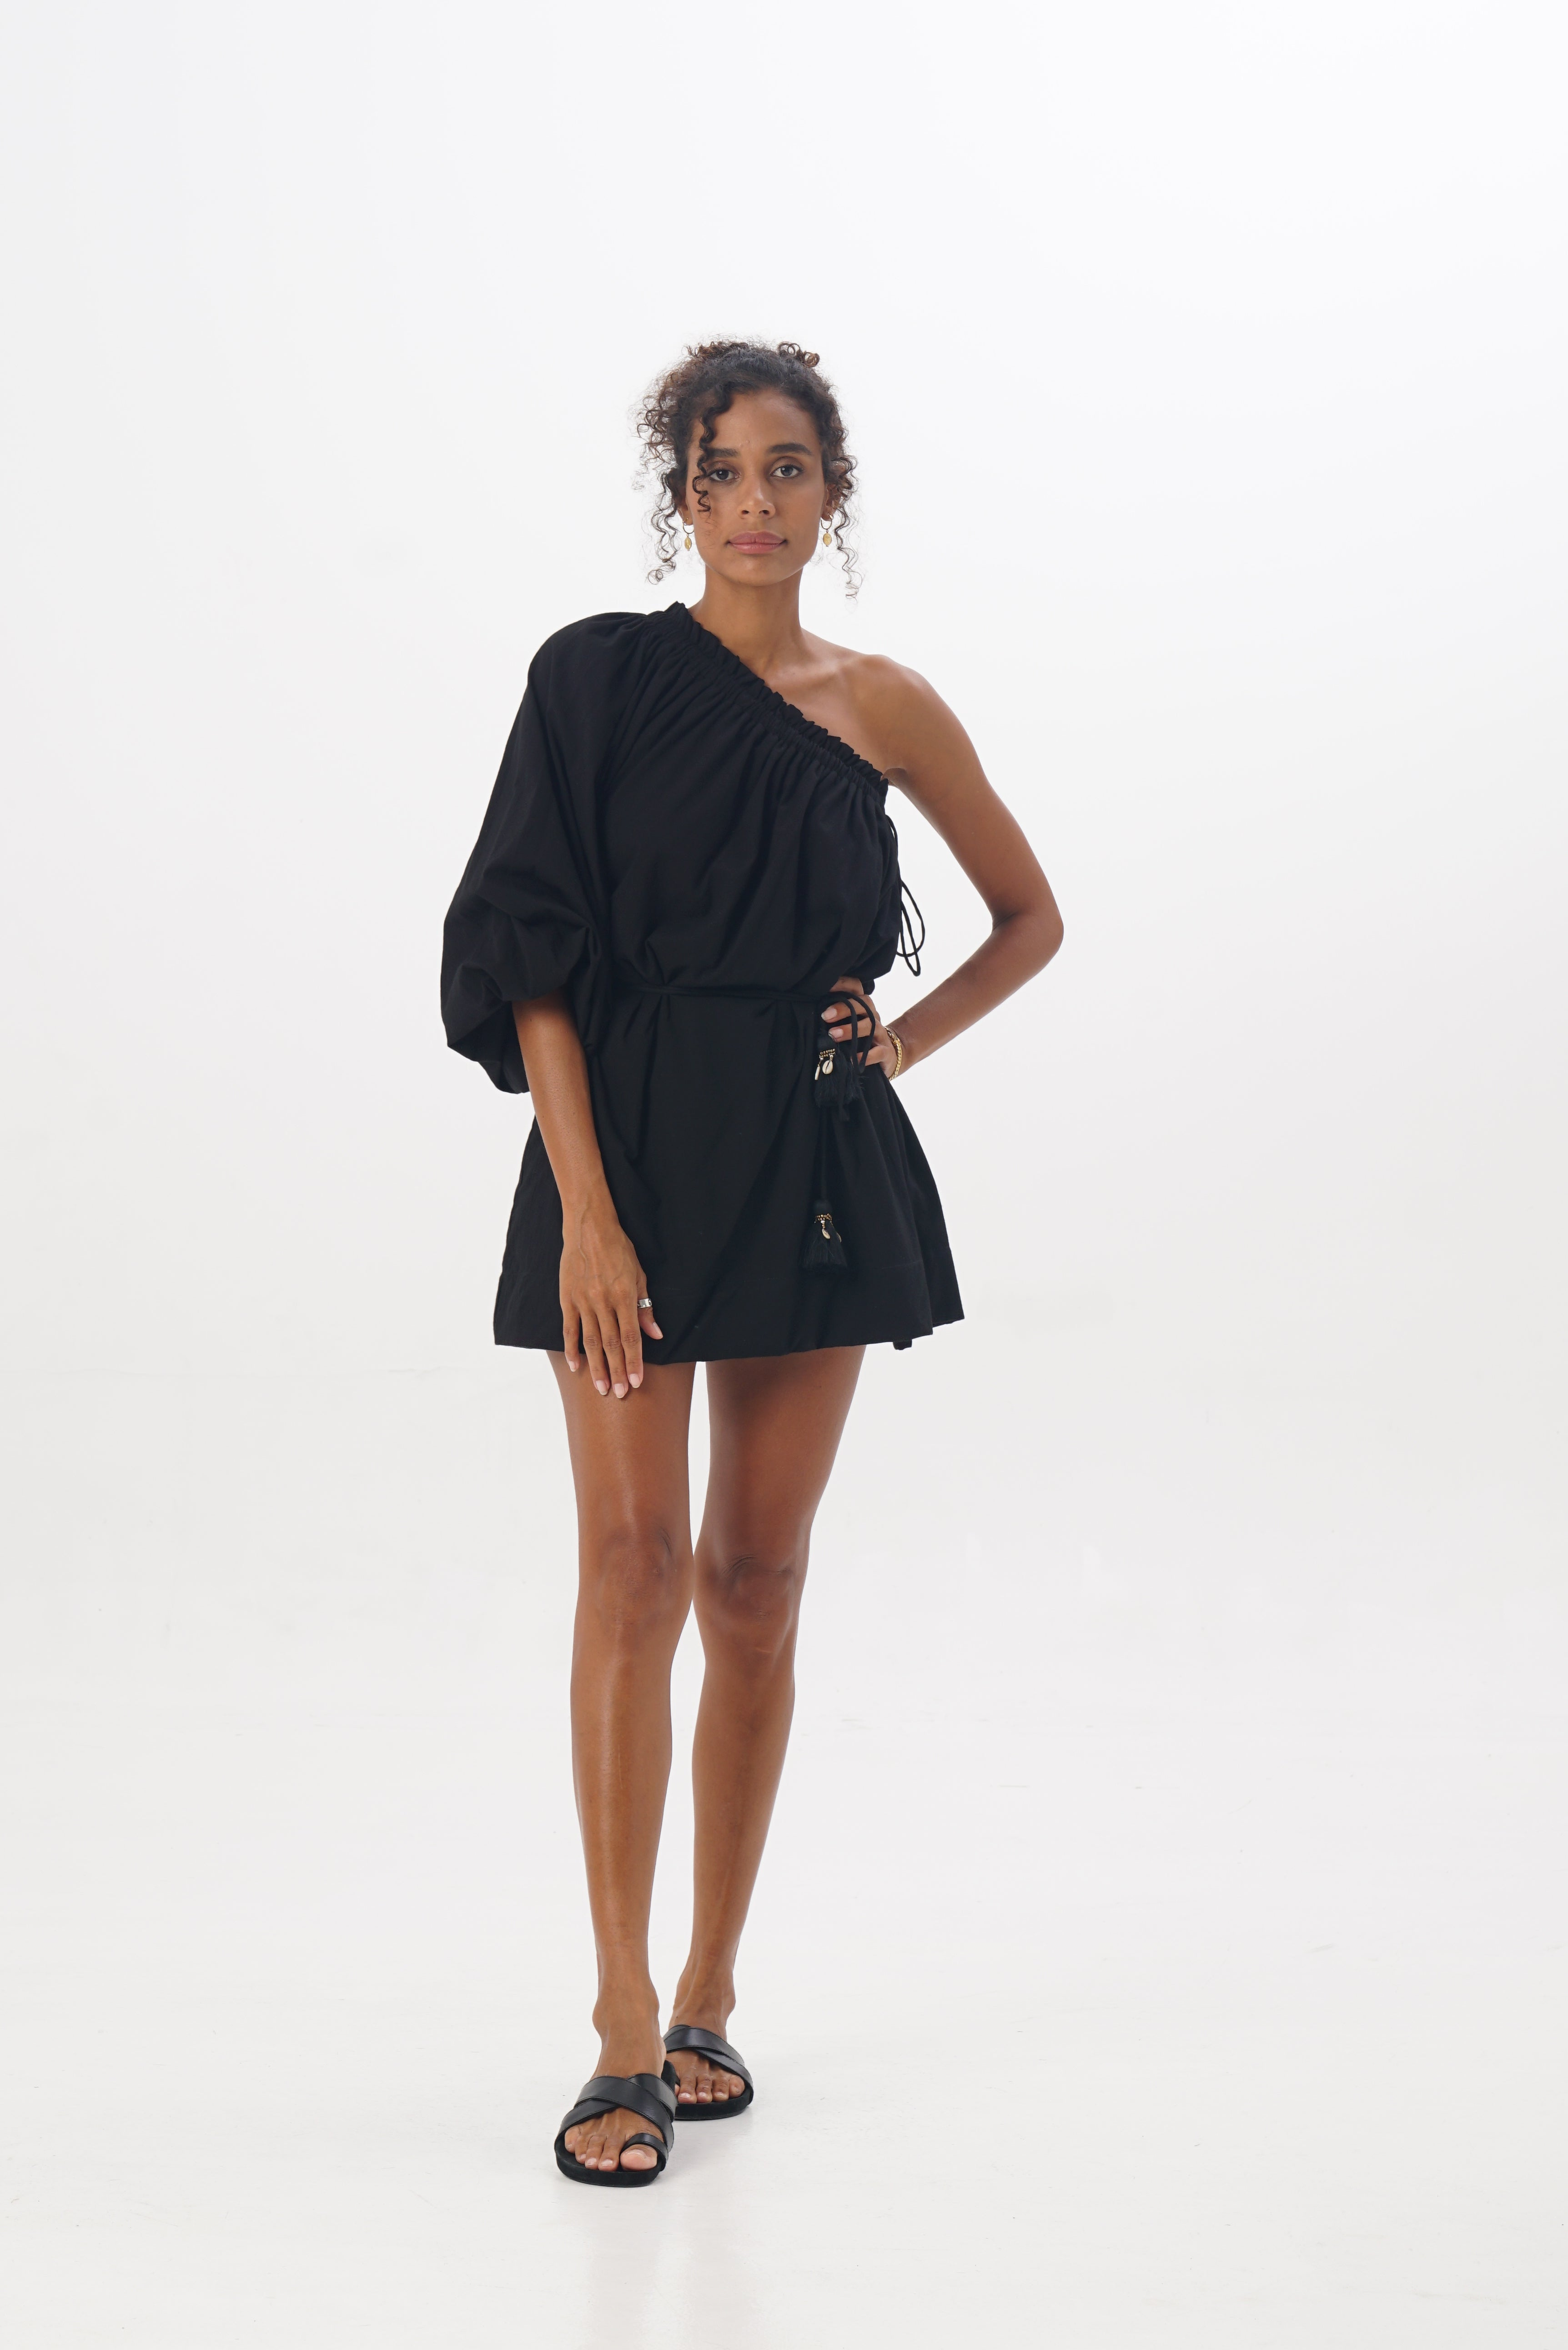 ÉSS THE LABEL Sibella One Shoulder Dress - Black